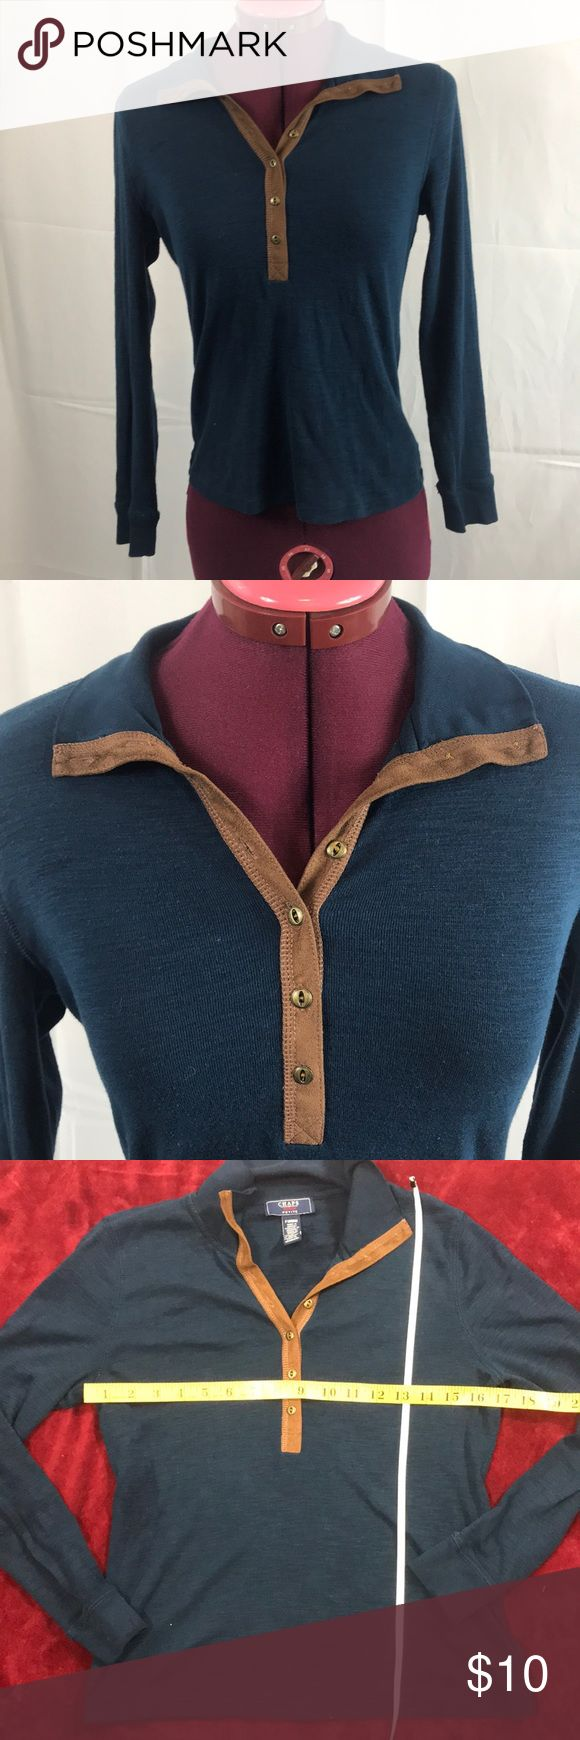 Chaps Petite Long Sleeve Top Size Medium Chaps Petite Top. Size Medium. Button down front. Preowned in good condition. Comes from smoke free and clean home. Chaps Tops